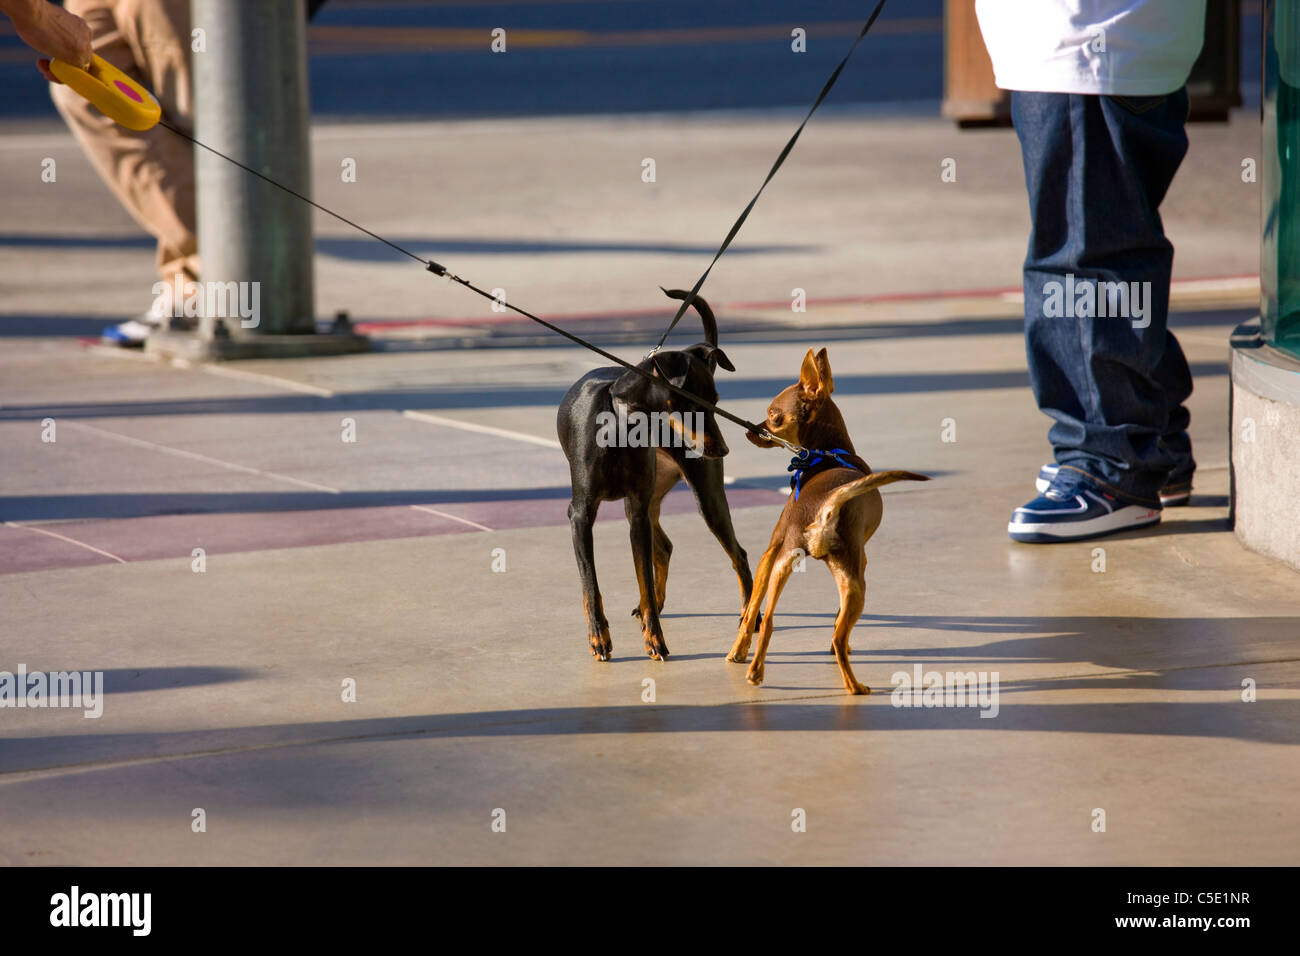 Two leashed dogs meet on the road - Stock Image